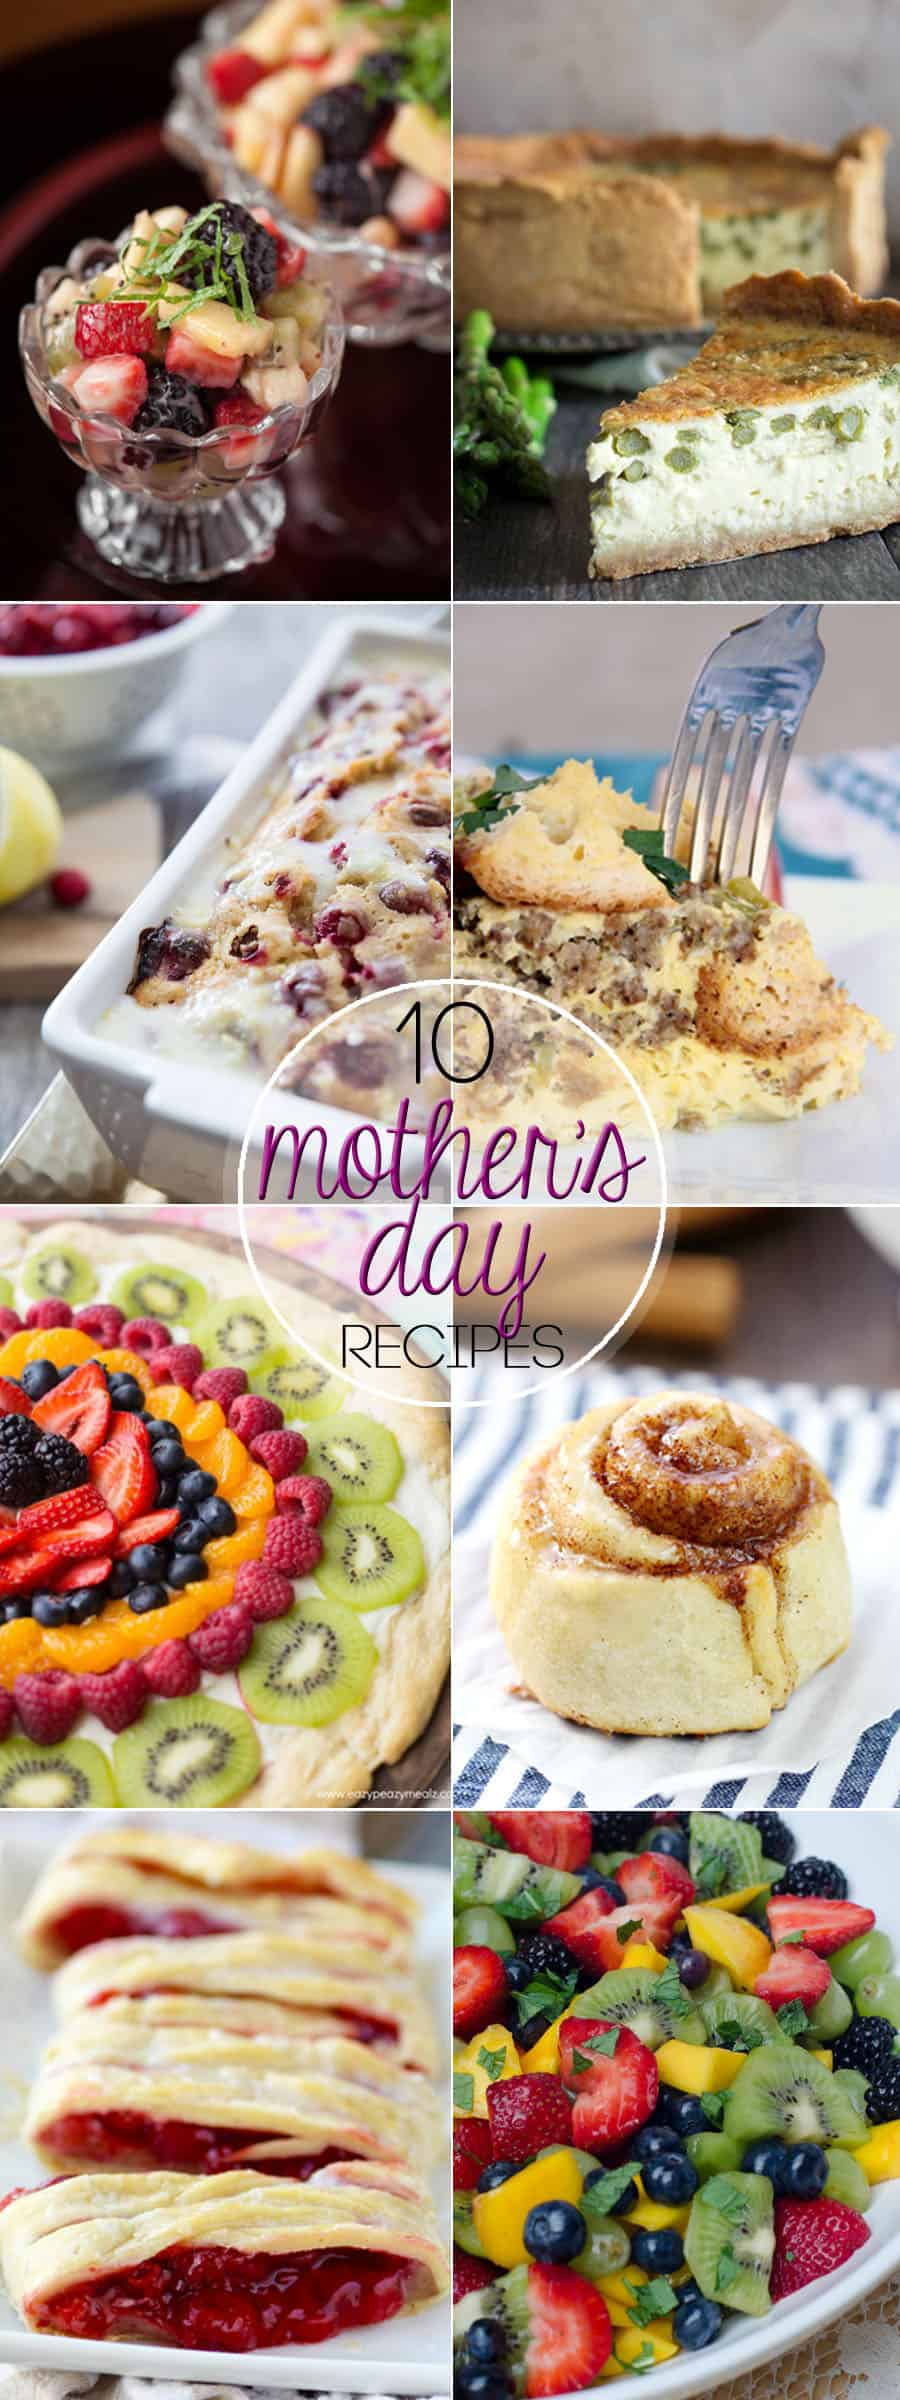 10 Recipes to Make Mom Smile on Mother's Day